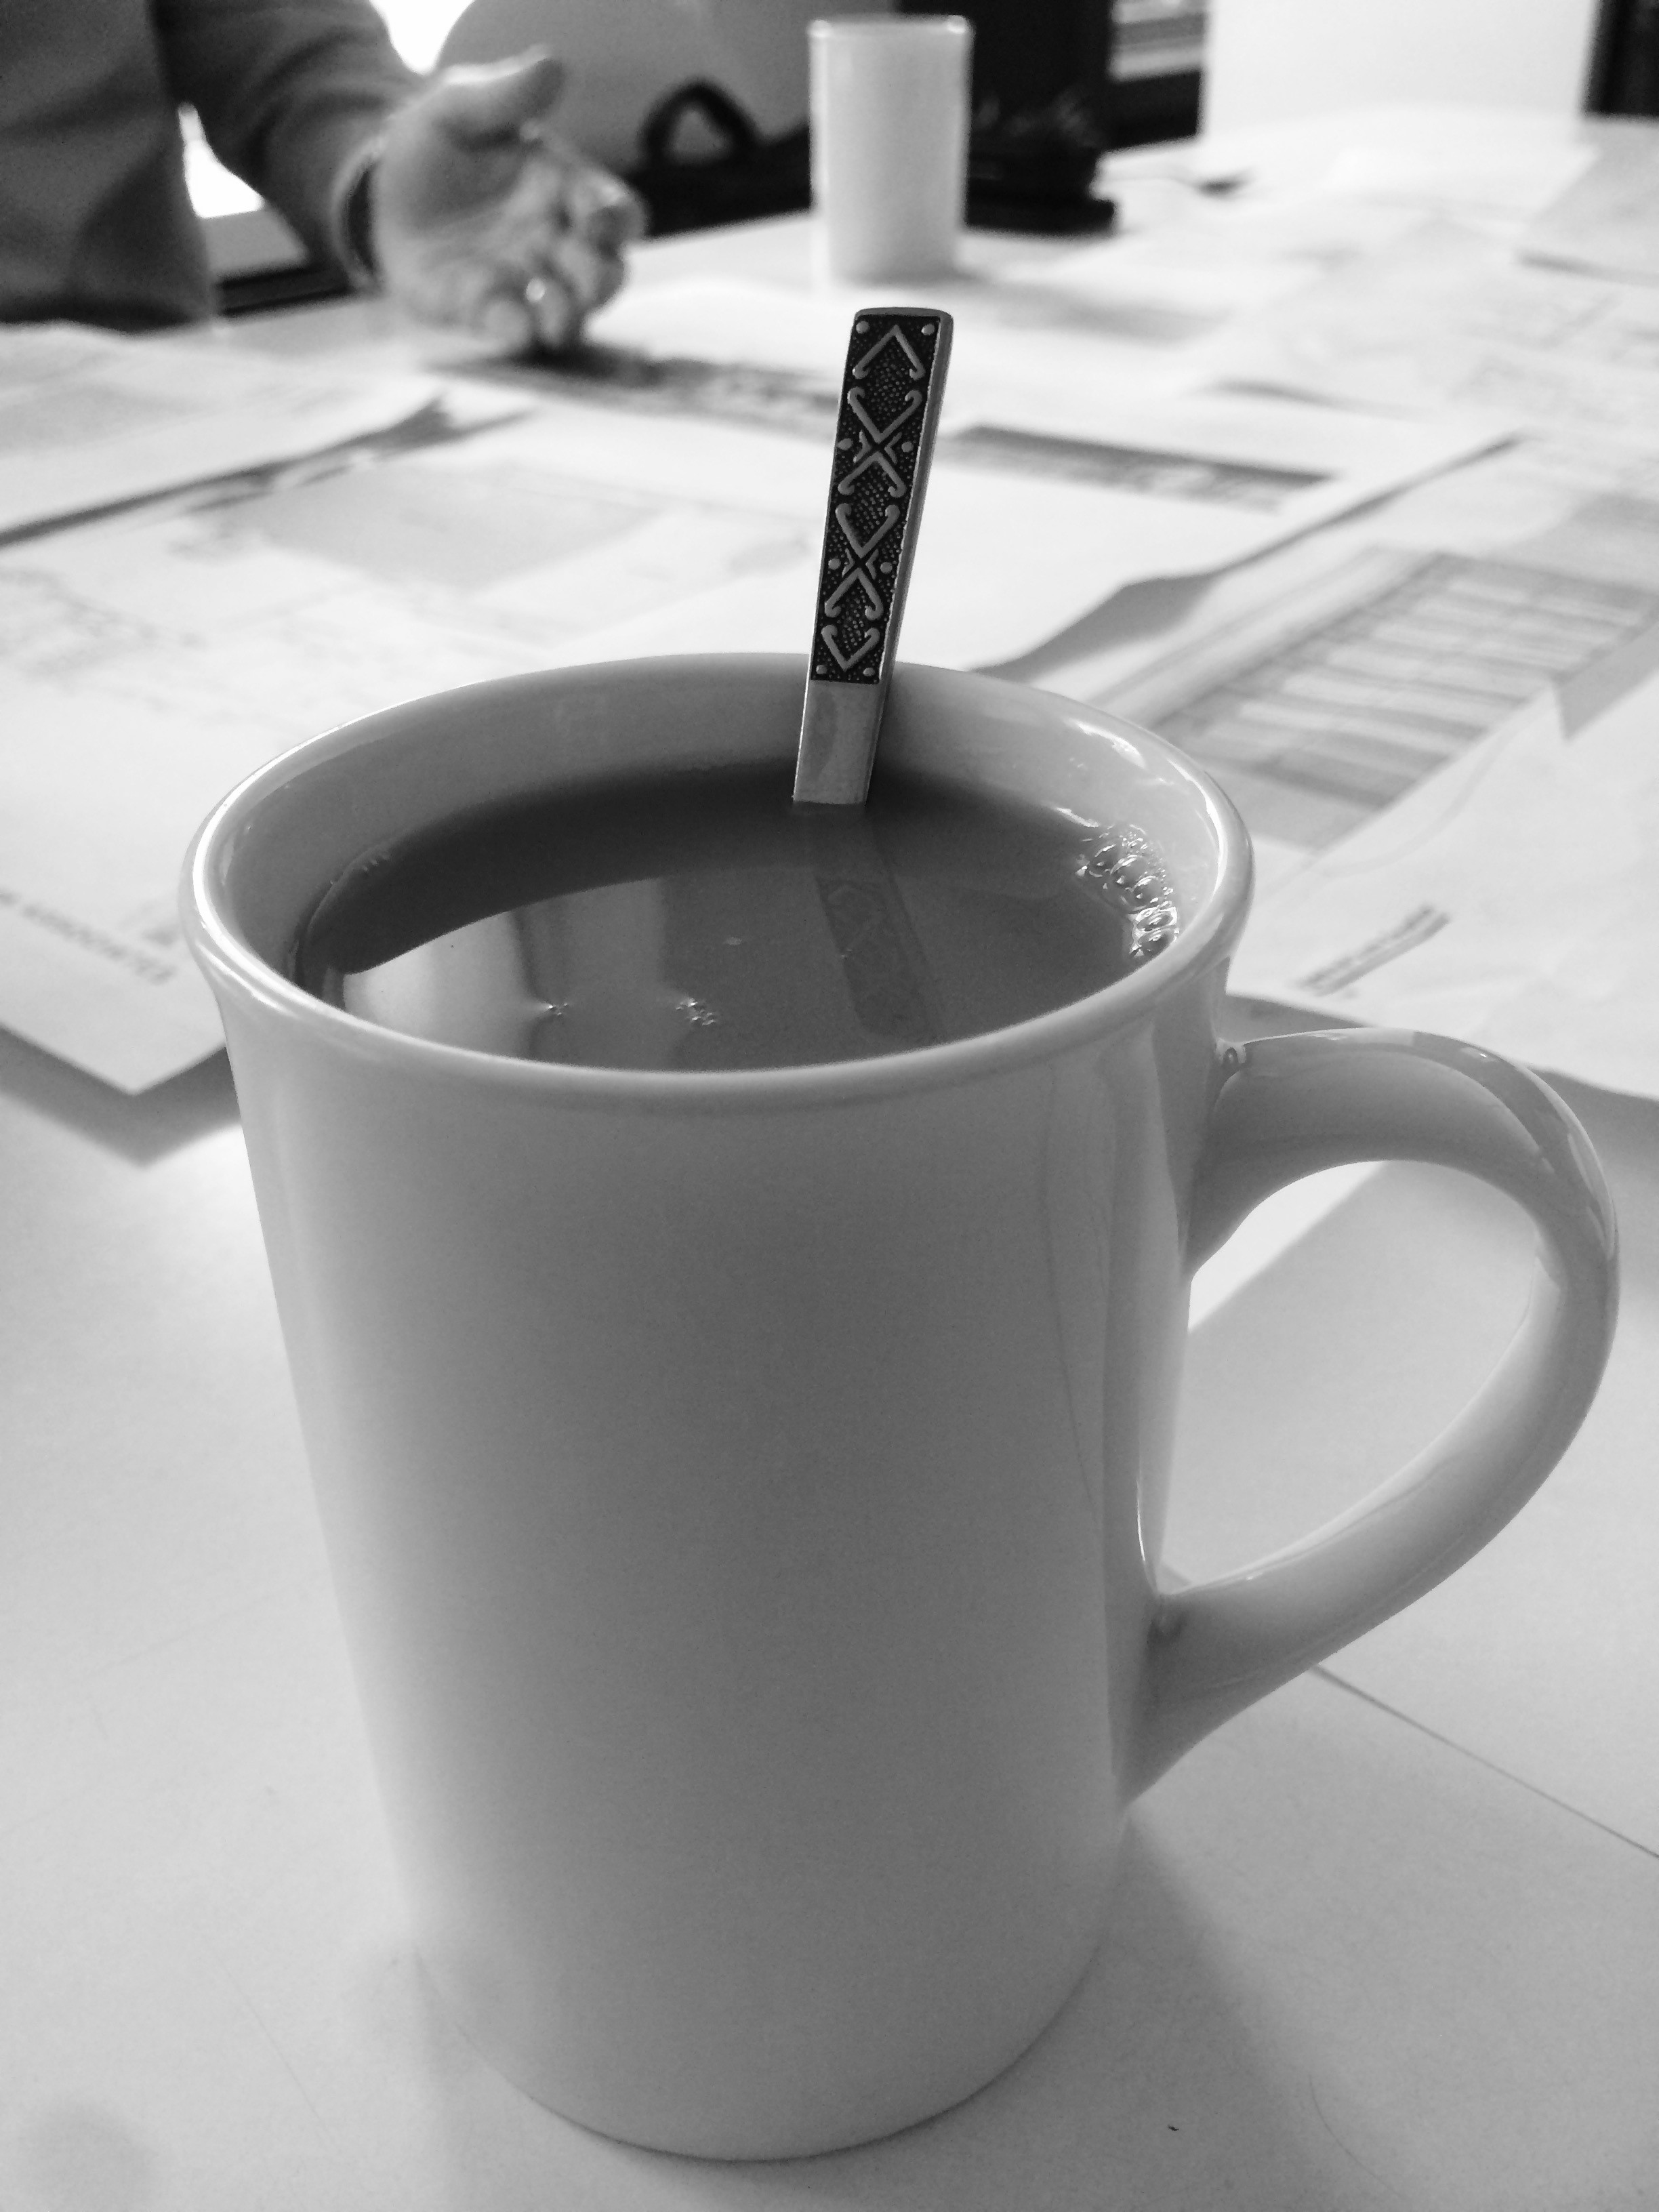 image of a cup and plans